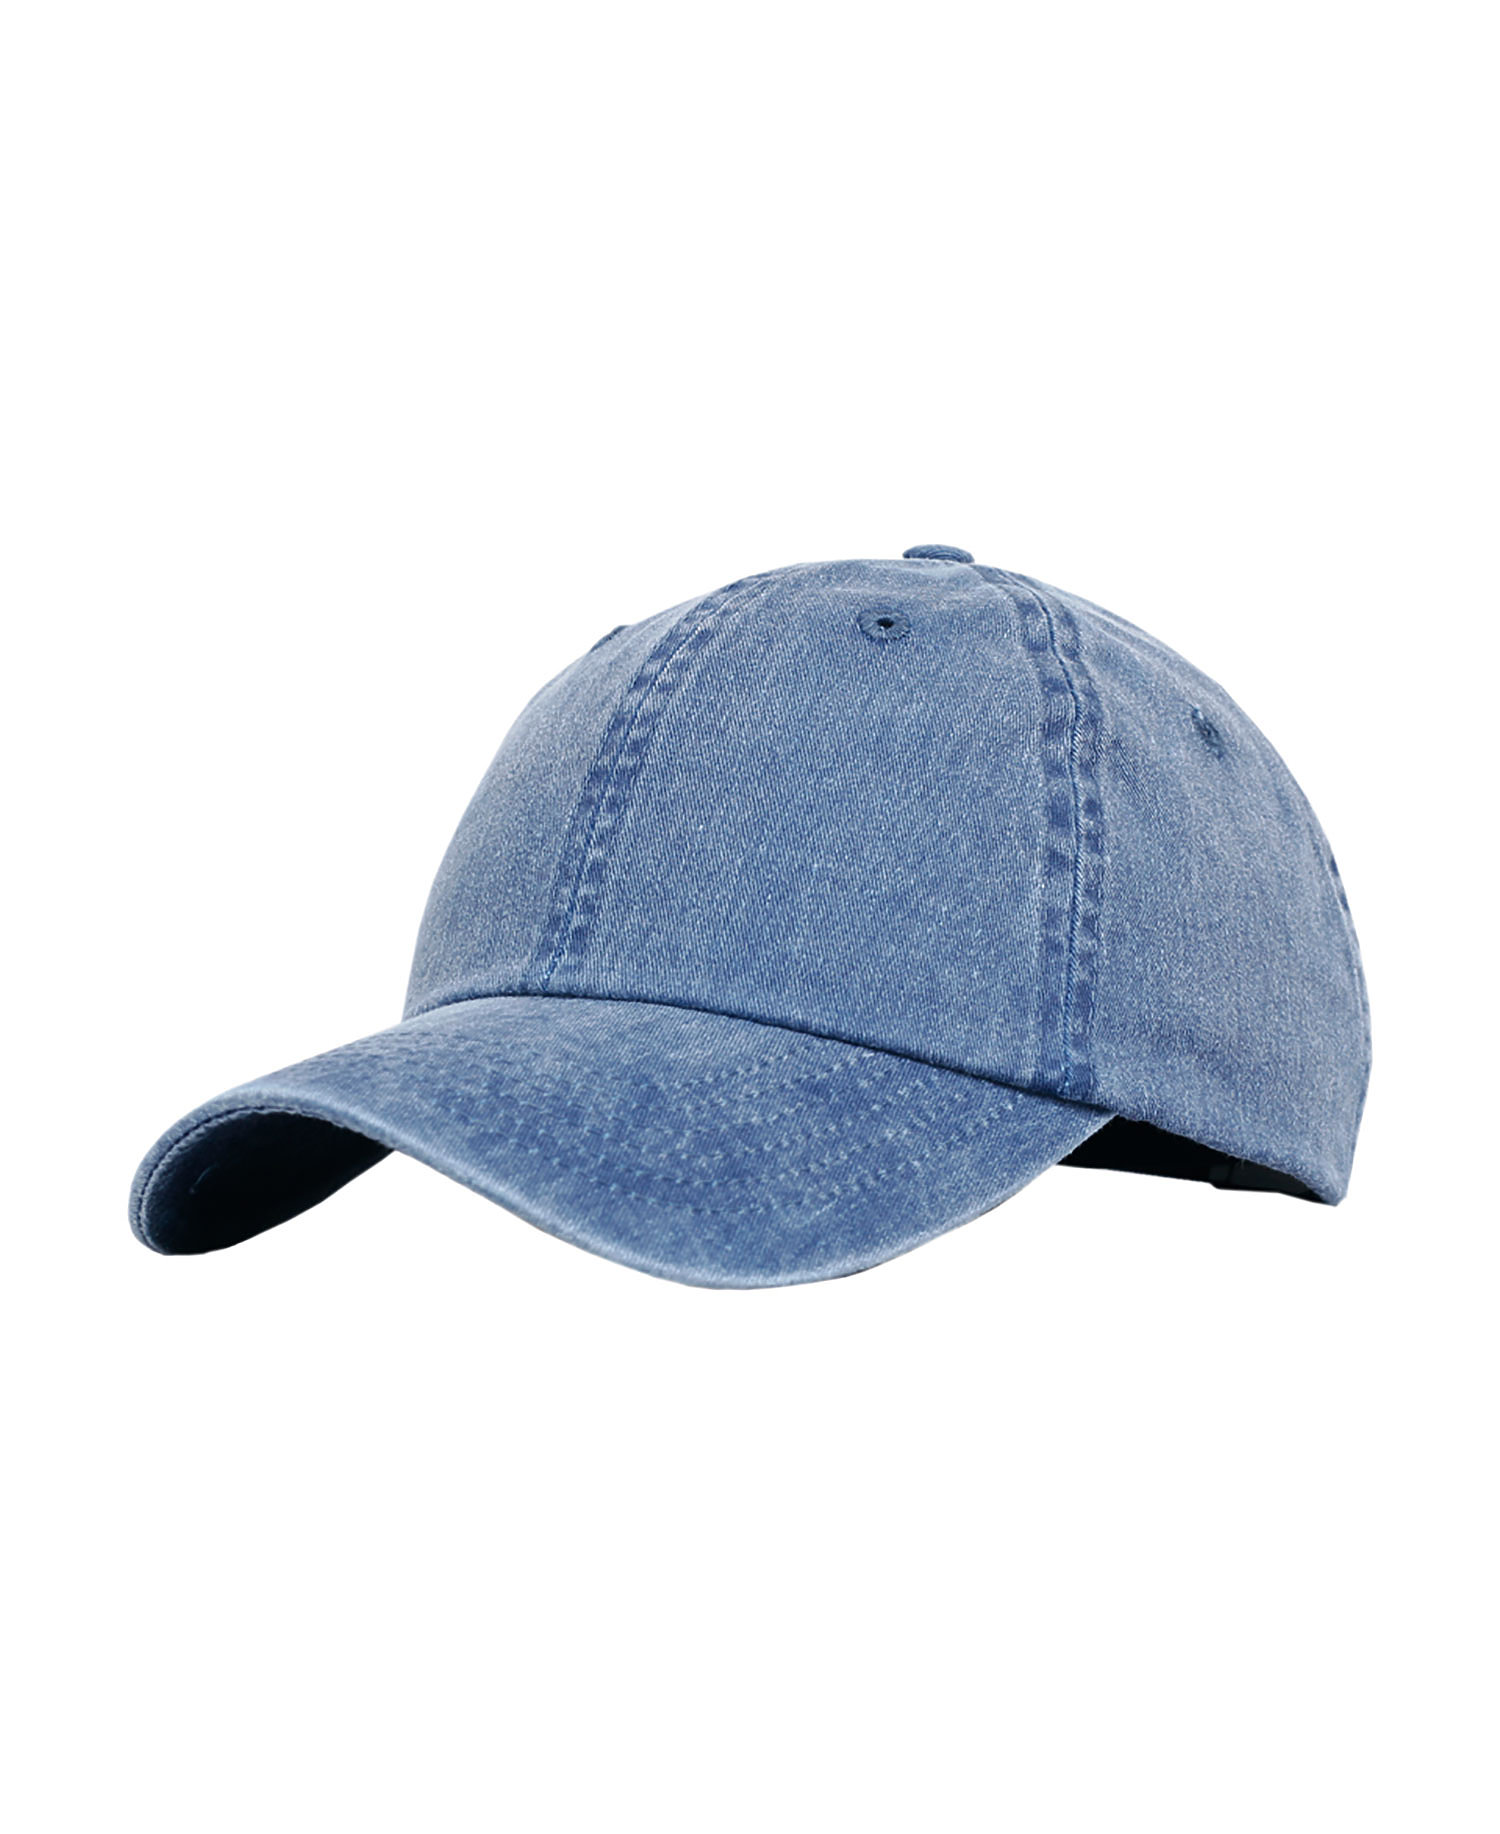 Fahrenheit F0470 - Washed Cotton Pigment Dyed Cap